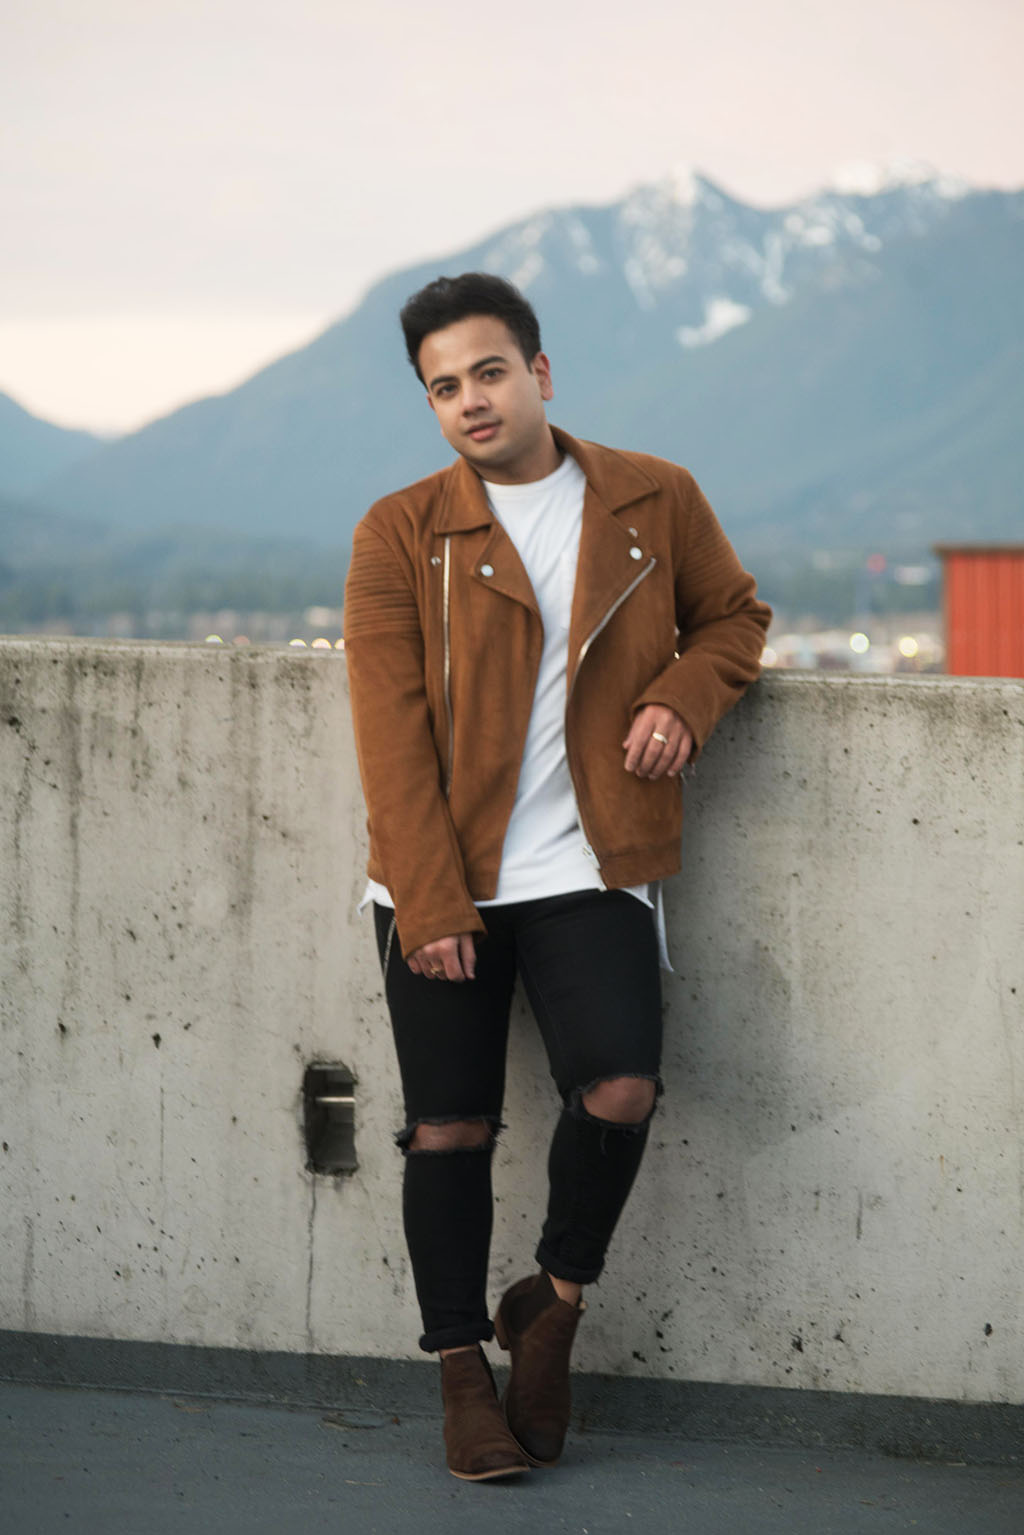 Men's Lifestyle Blogger_Fashion Blogger Vancouver Streetstyle+Jonathan Waiching Ho_10